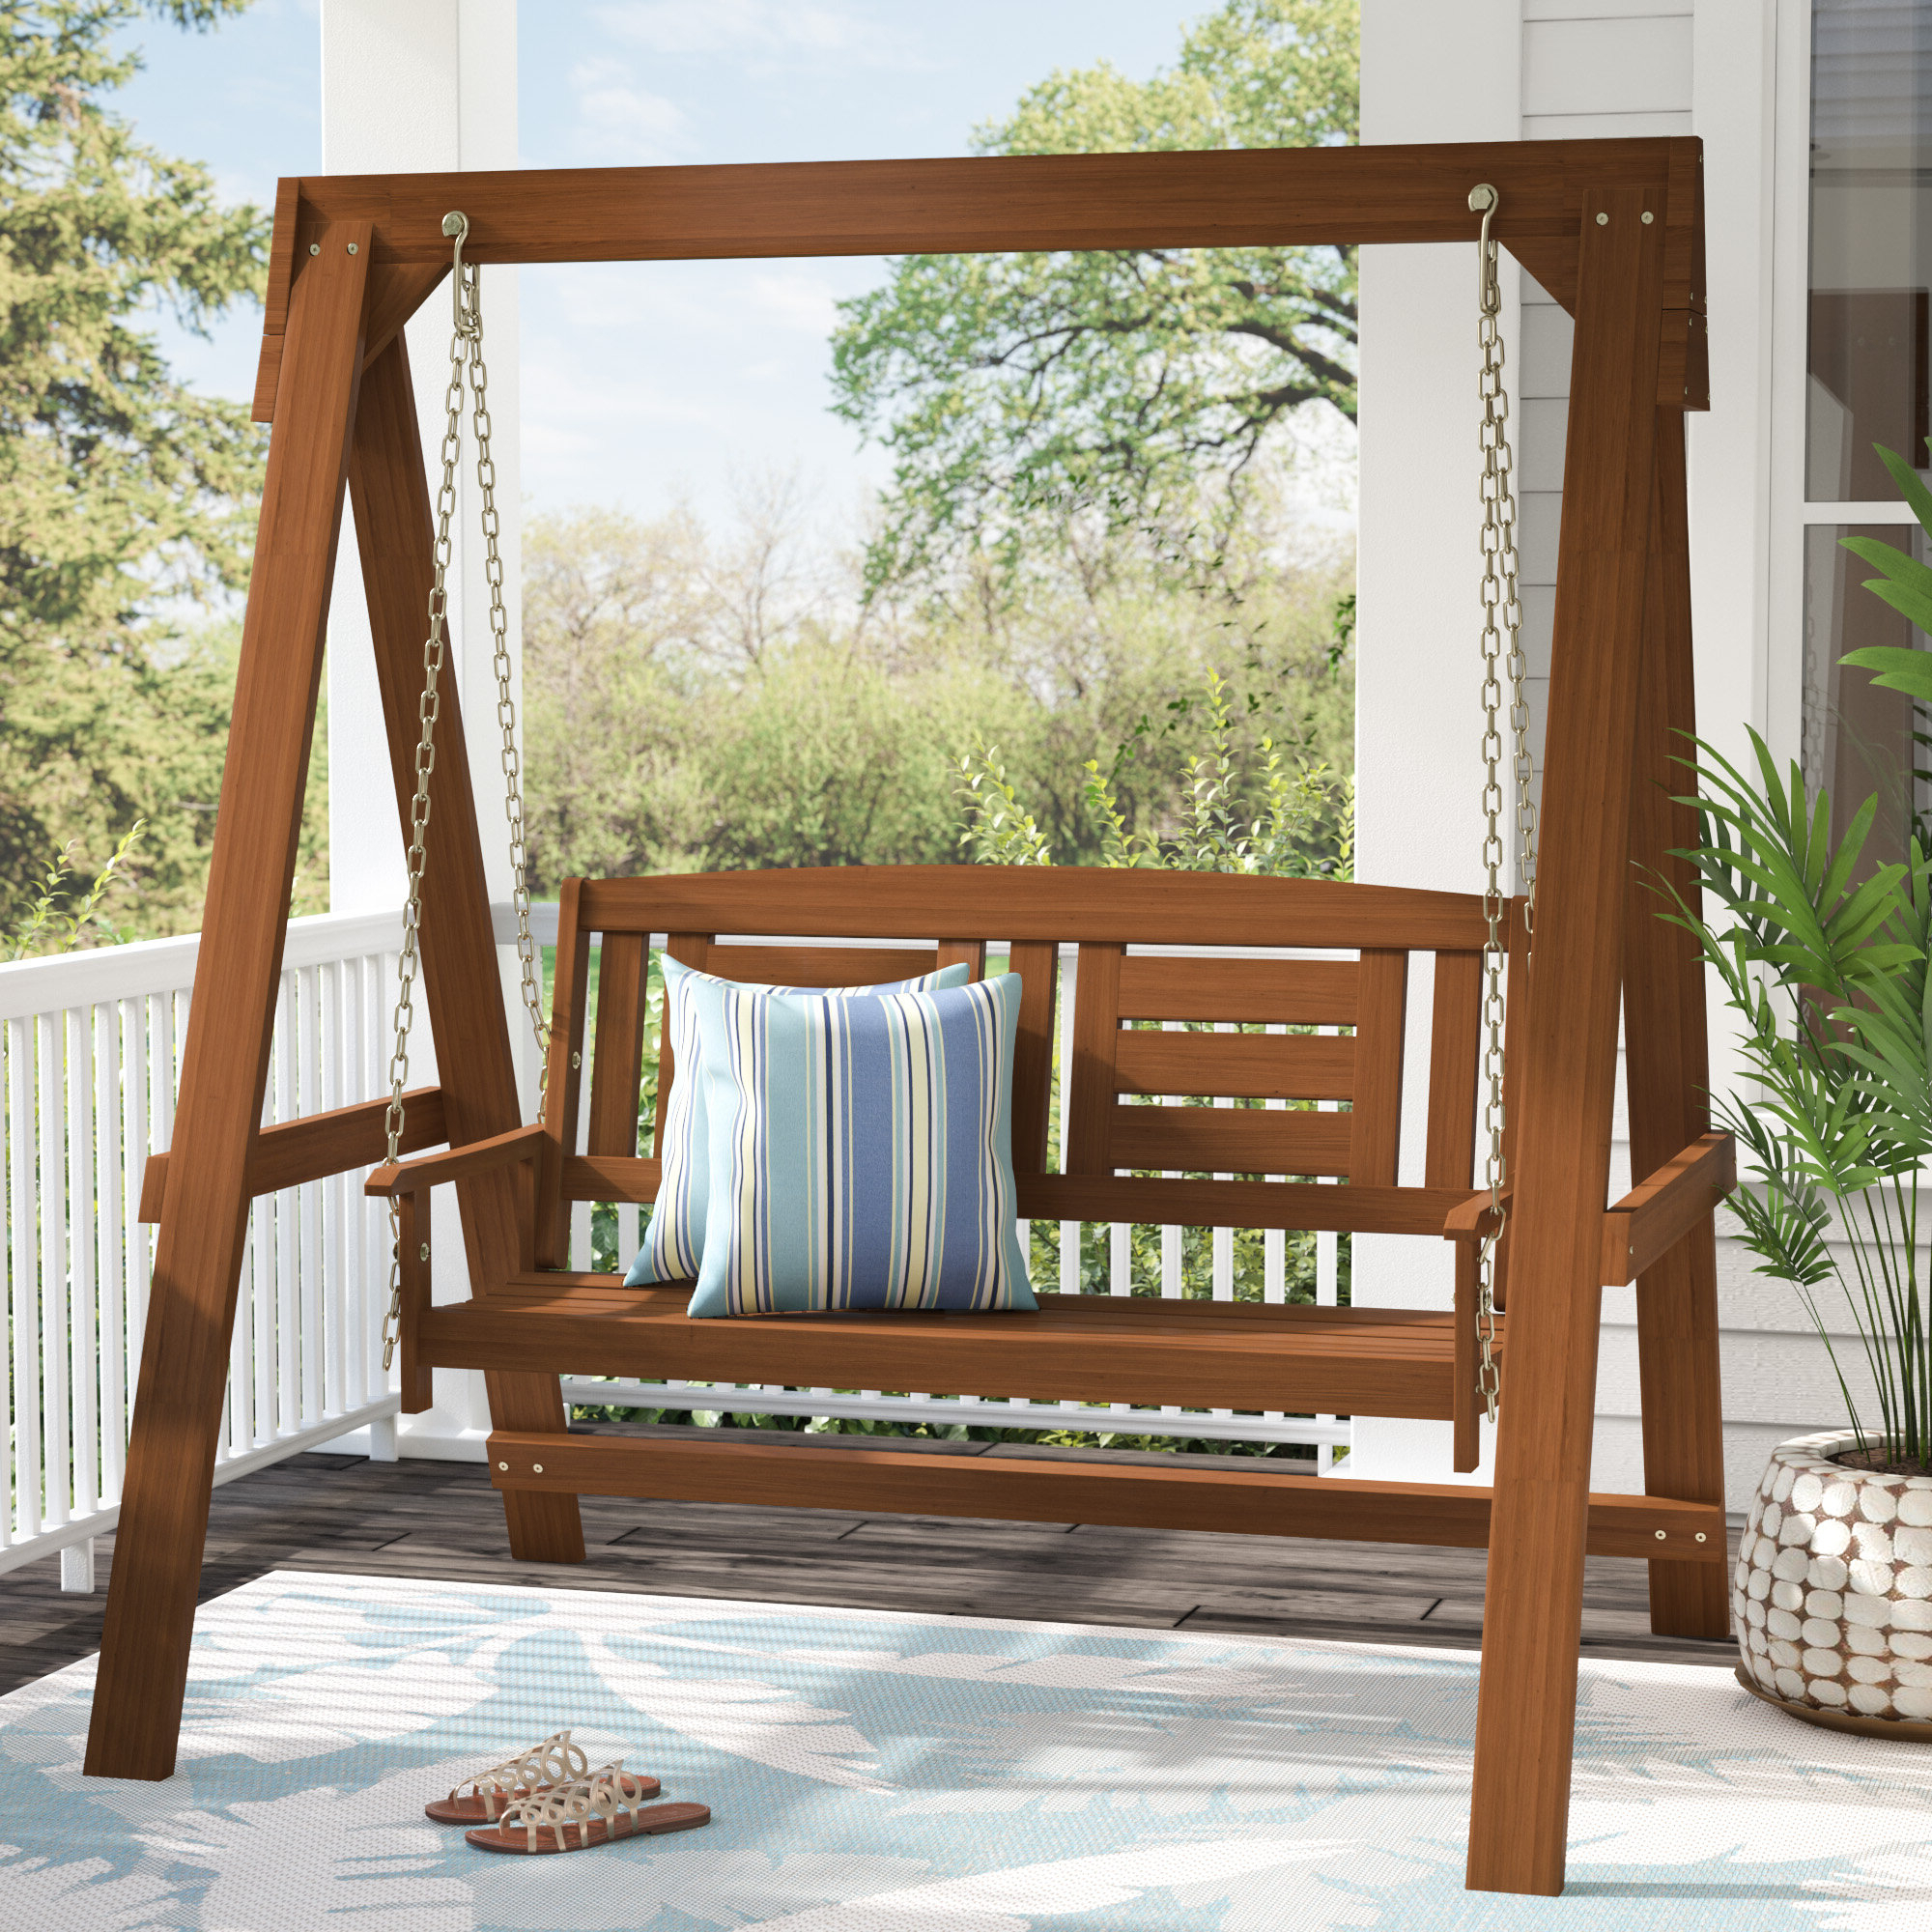 Porch Swings With Stand Regarding Latest Arianna Hardwood Hanging Porch Swing With Stand (Gallery 1 of 25)